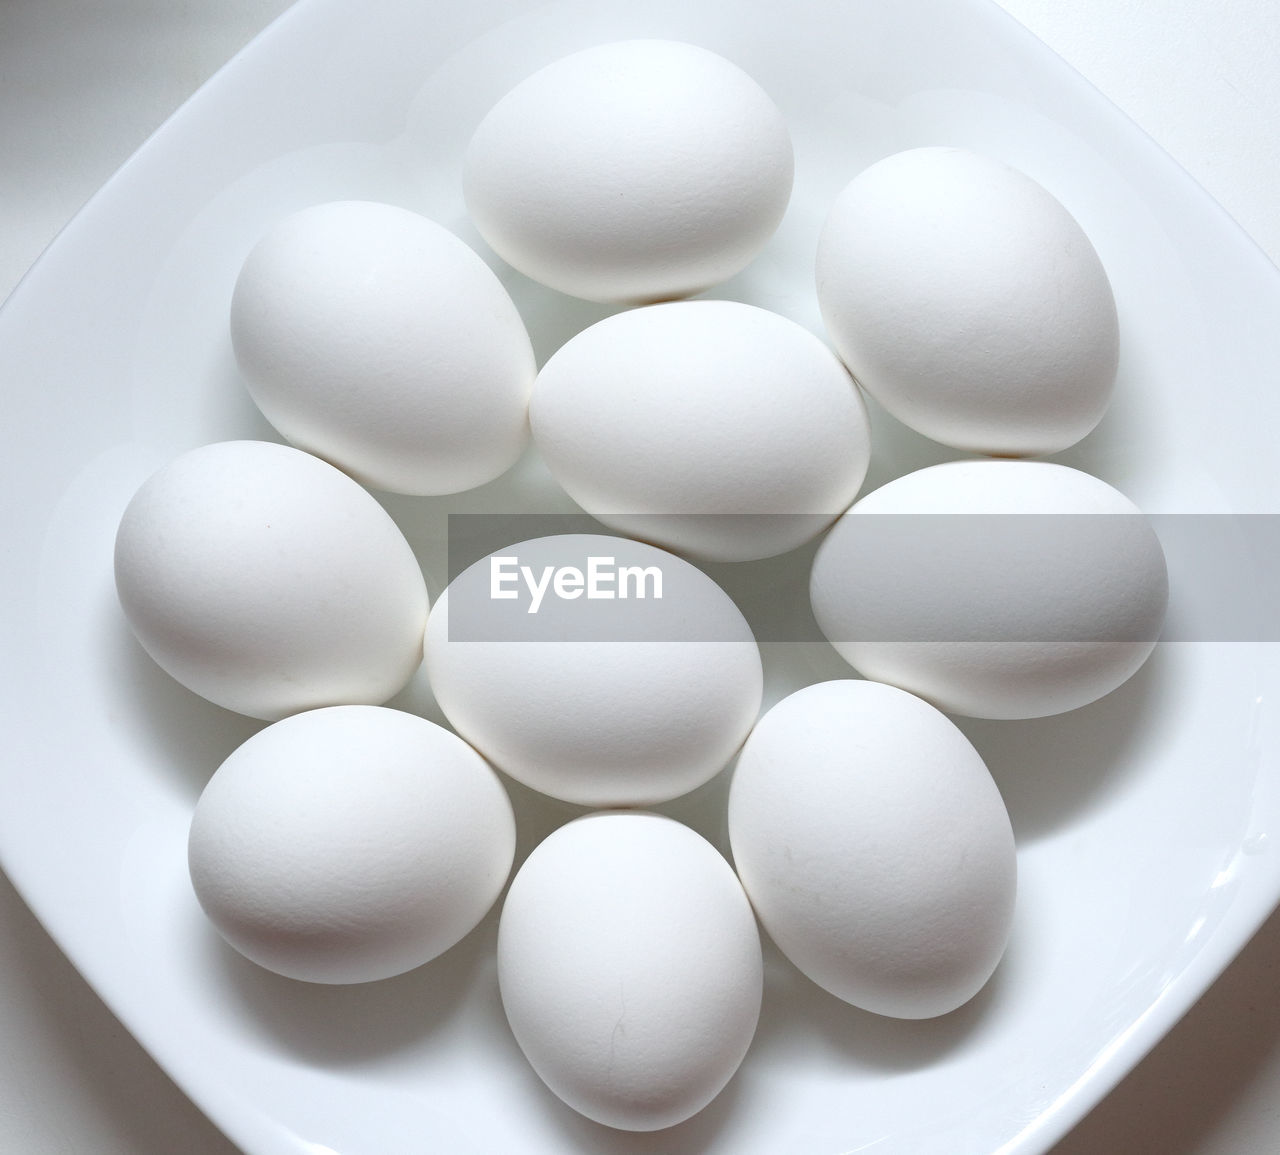 HIGH ANGLE VIEW OF EGGS IN WHITE CONTAINER